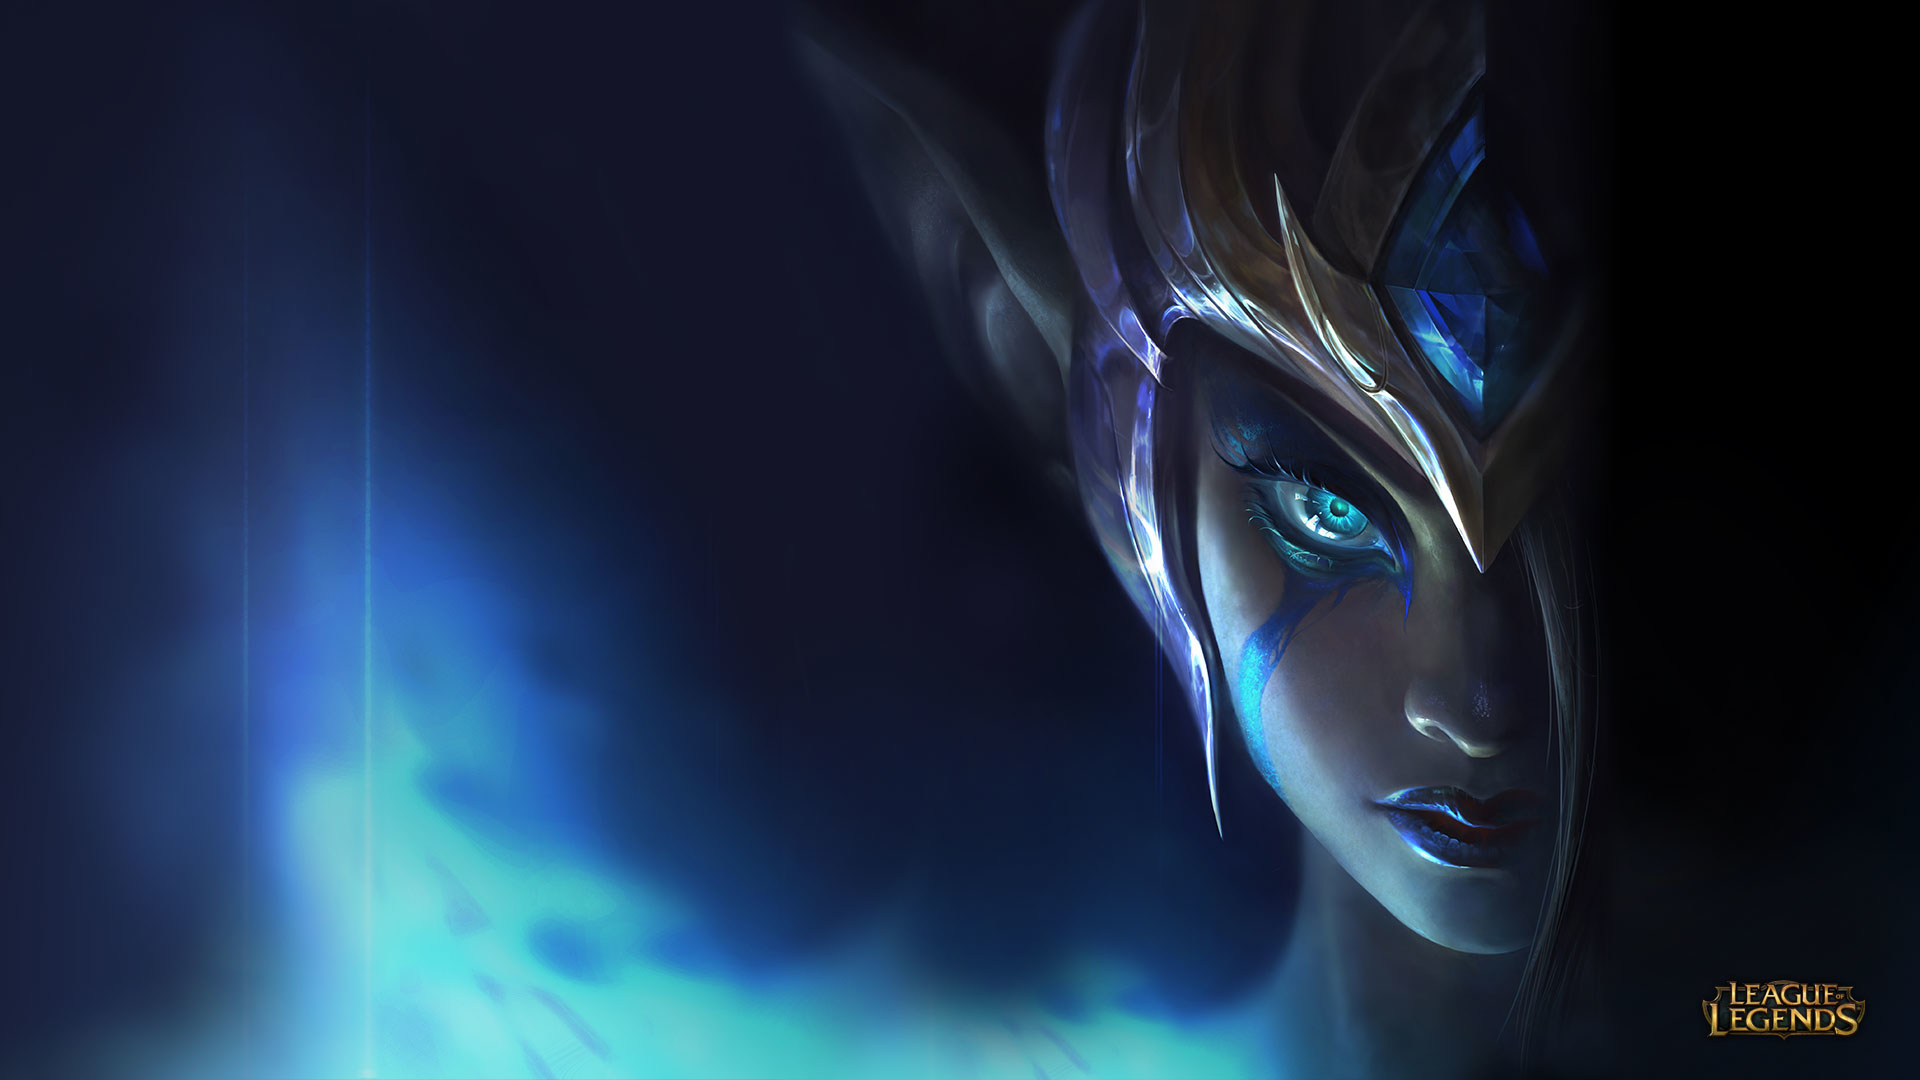 Victorious Morgana includes New Model bluegold style with awesome gold quality textures New set of amazing bluegold particles that make this skin the best one for morg so far